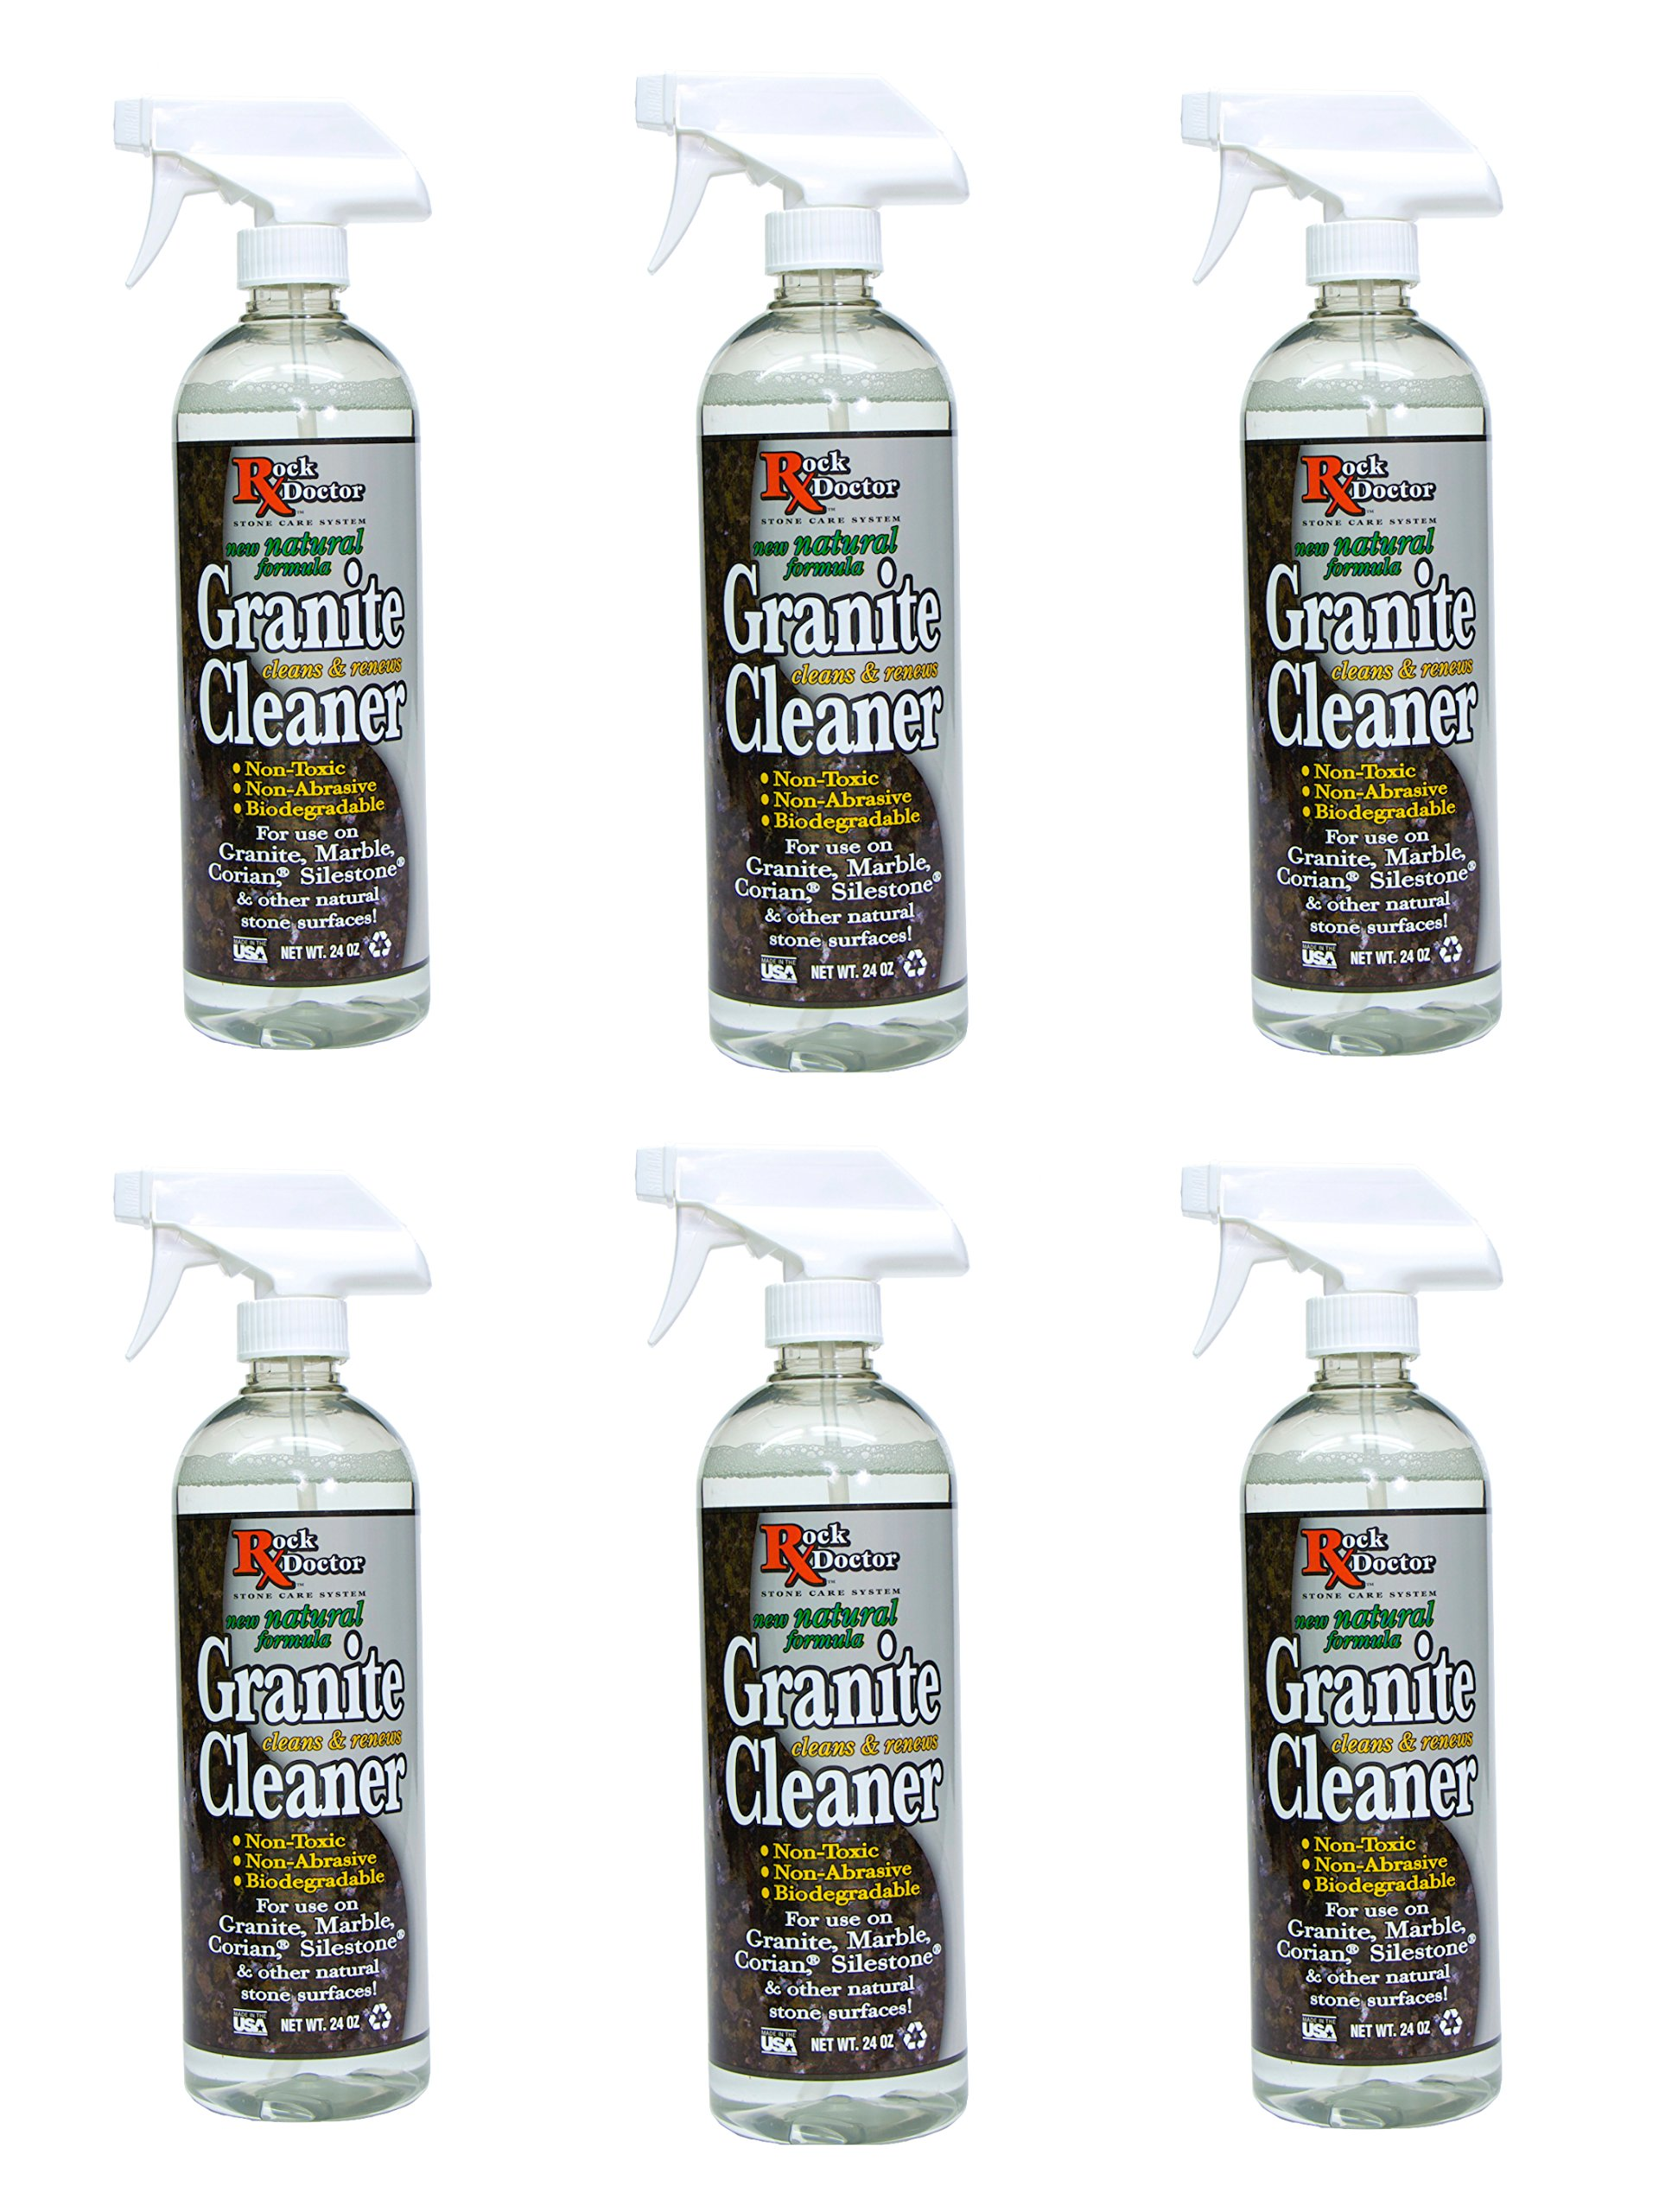 Rock Doctor Natural Granite Cleaner for a Sparkling Kitchen, Natural Cleaner - Non-Toxic Granite Cleaner for Kitchen Counter, Table Top & Marble Countertop - Biodegradable pH Neutral Cleaner, 24 oz. by Rock Doctor